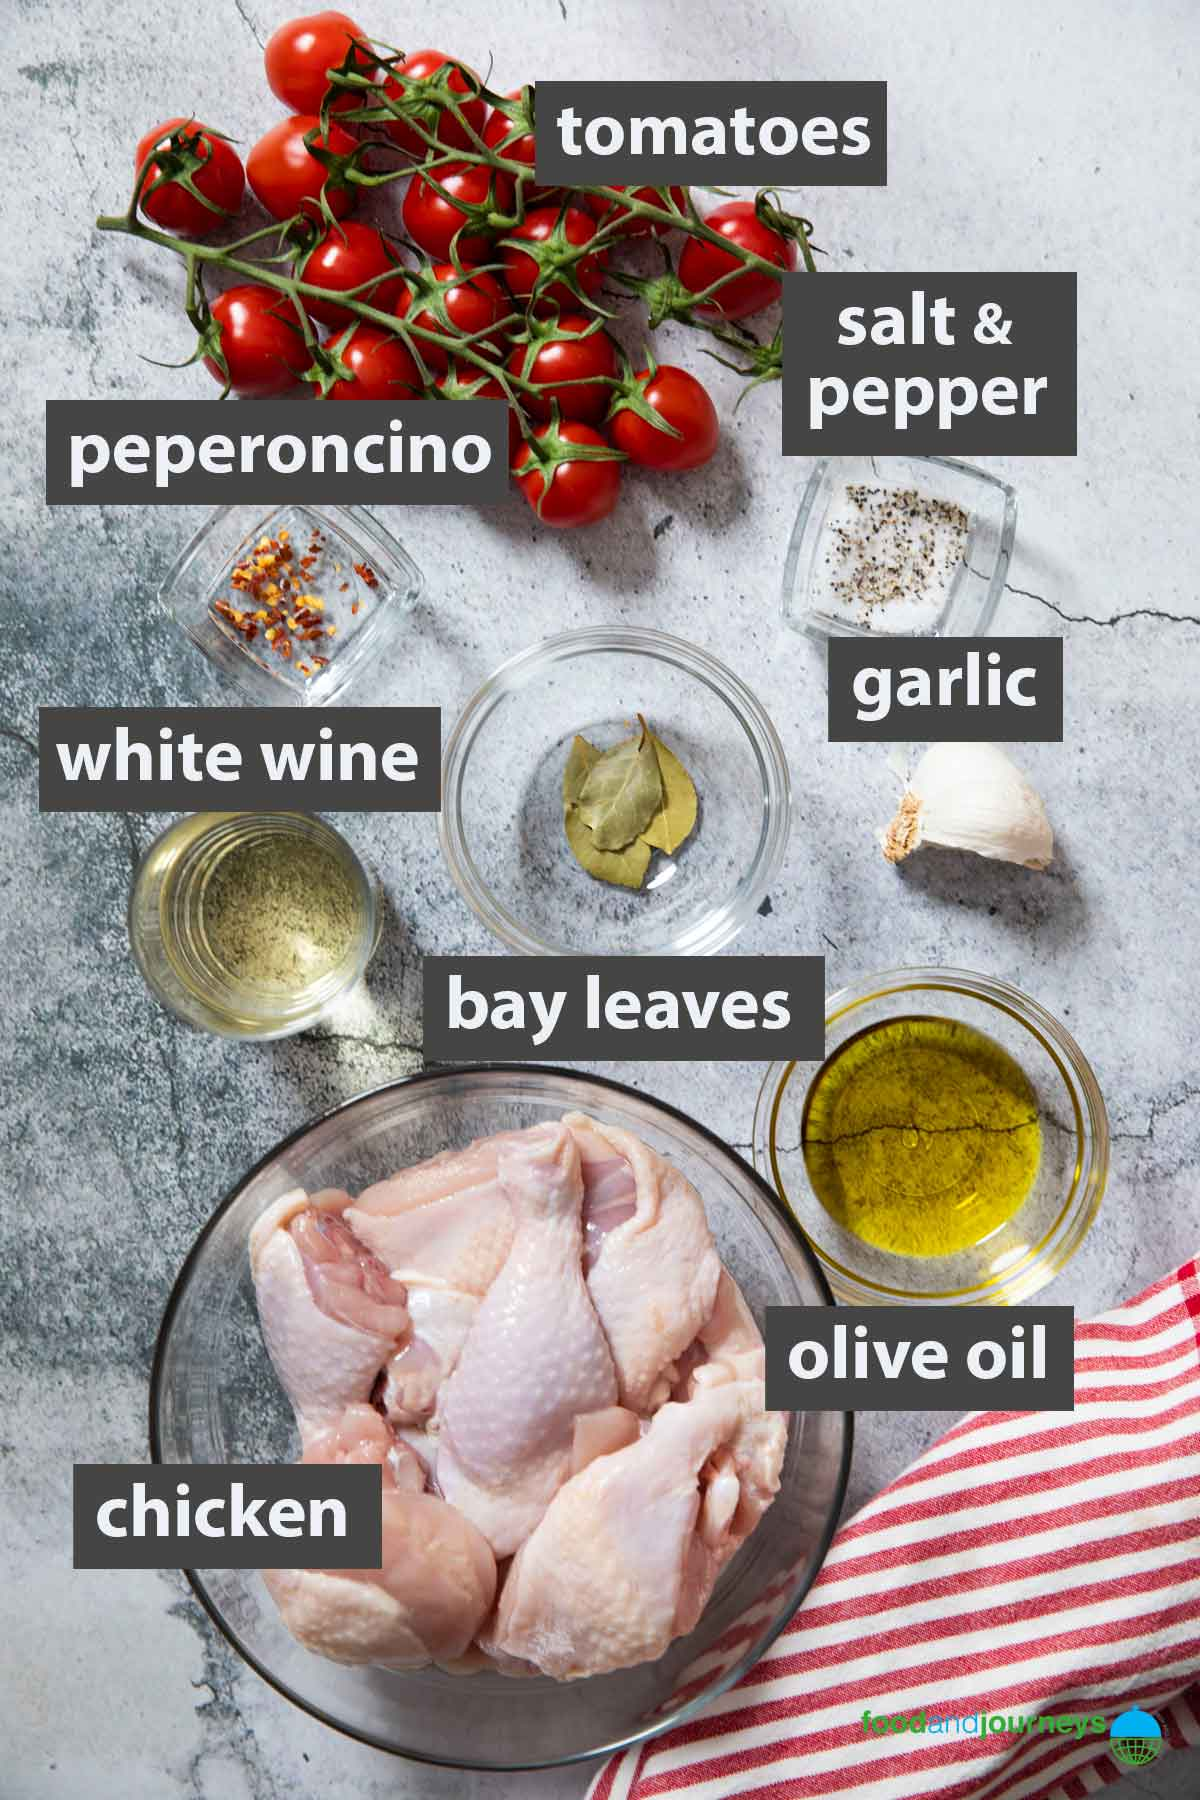 An image showing all the ingredients you need to prepare traditional Chicken Cacciatore.